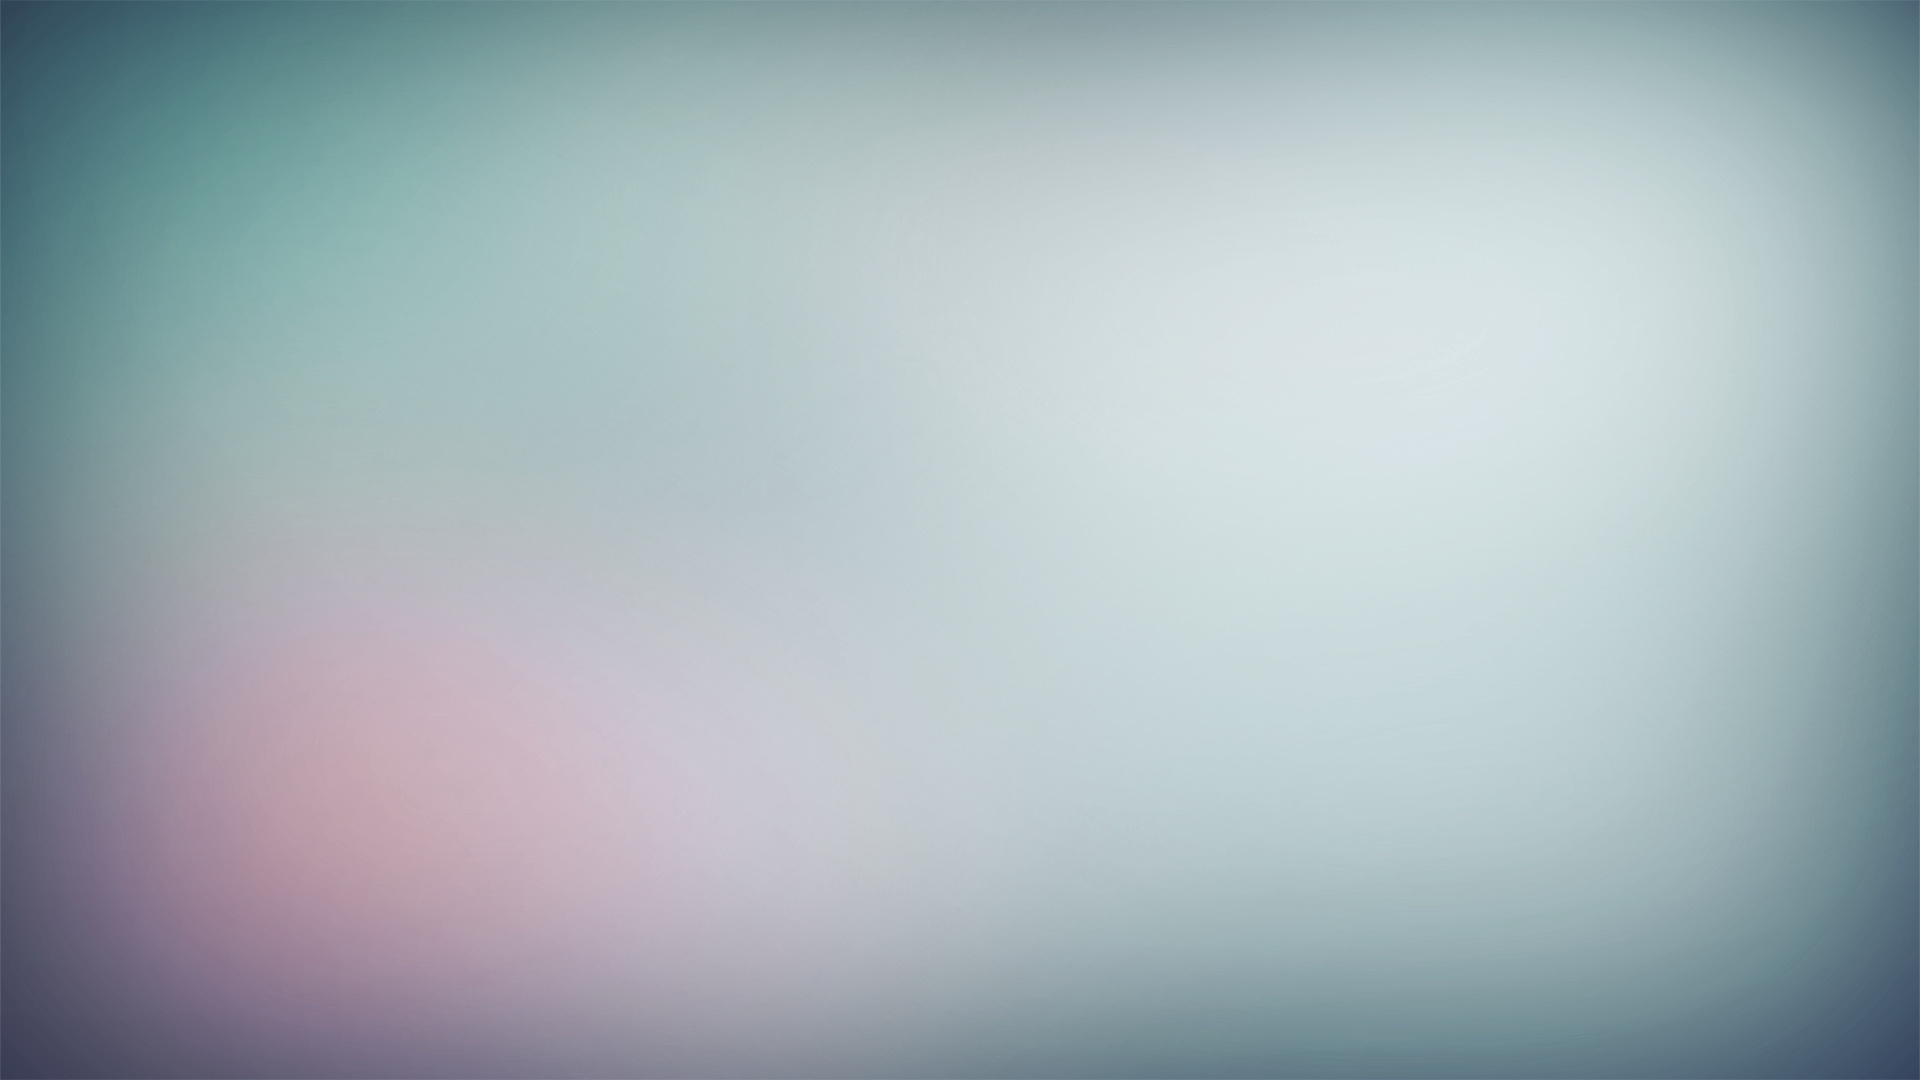 Simple Light Gradient Wallpaper #117606 - Resolution 1920x1080 px